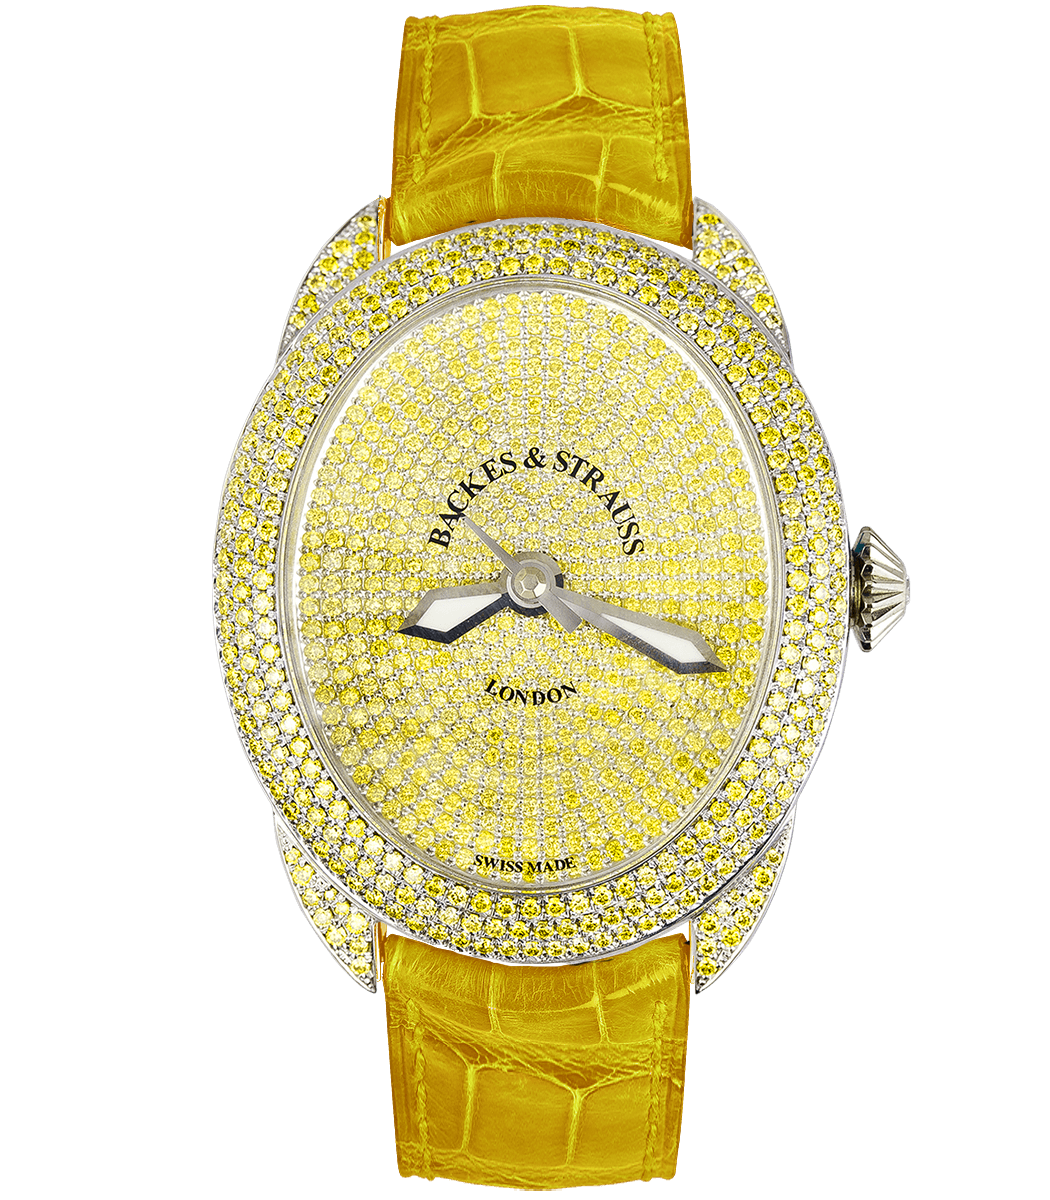 Regent Fancy Canary 4047 limited edition watch for men and women